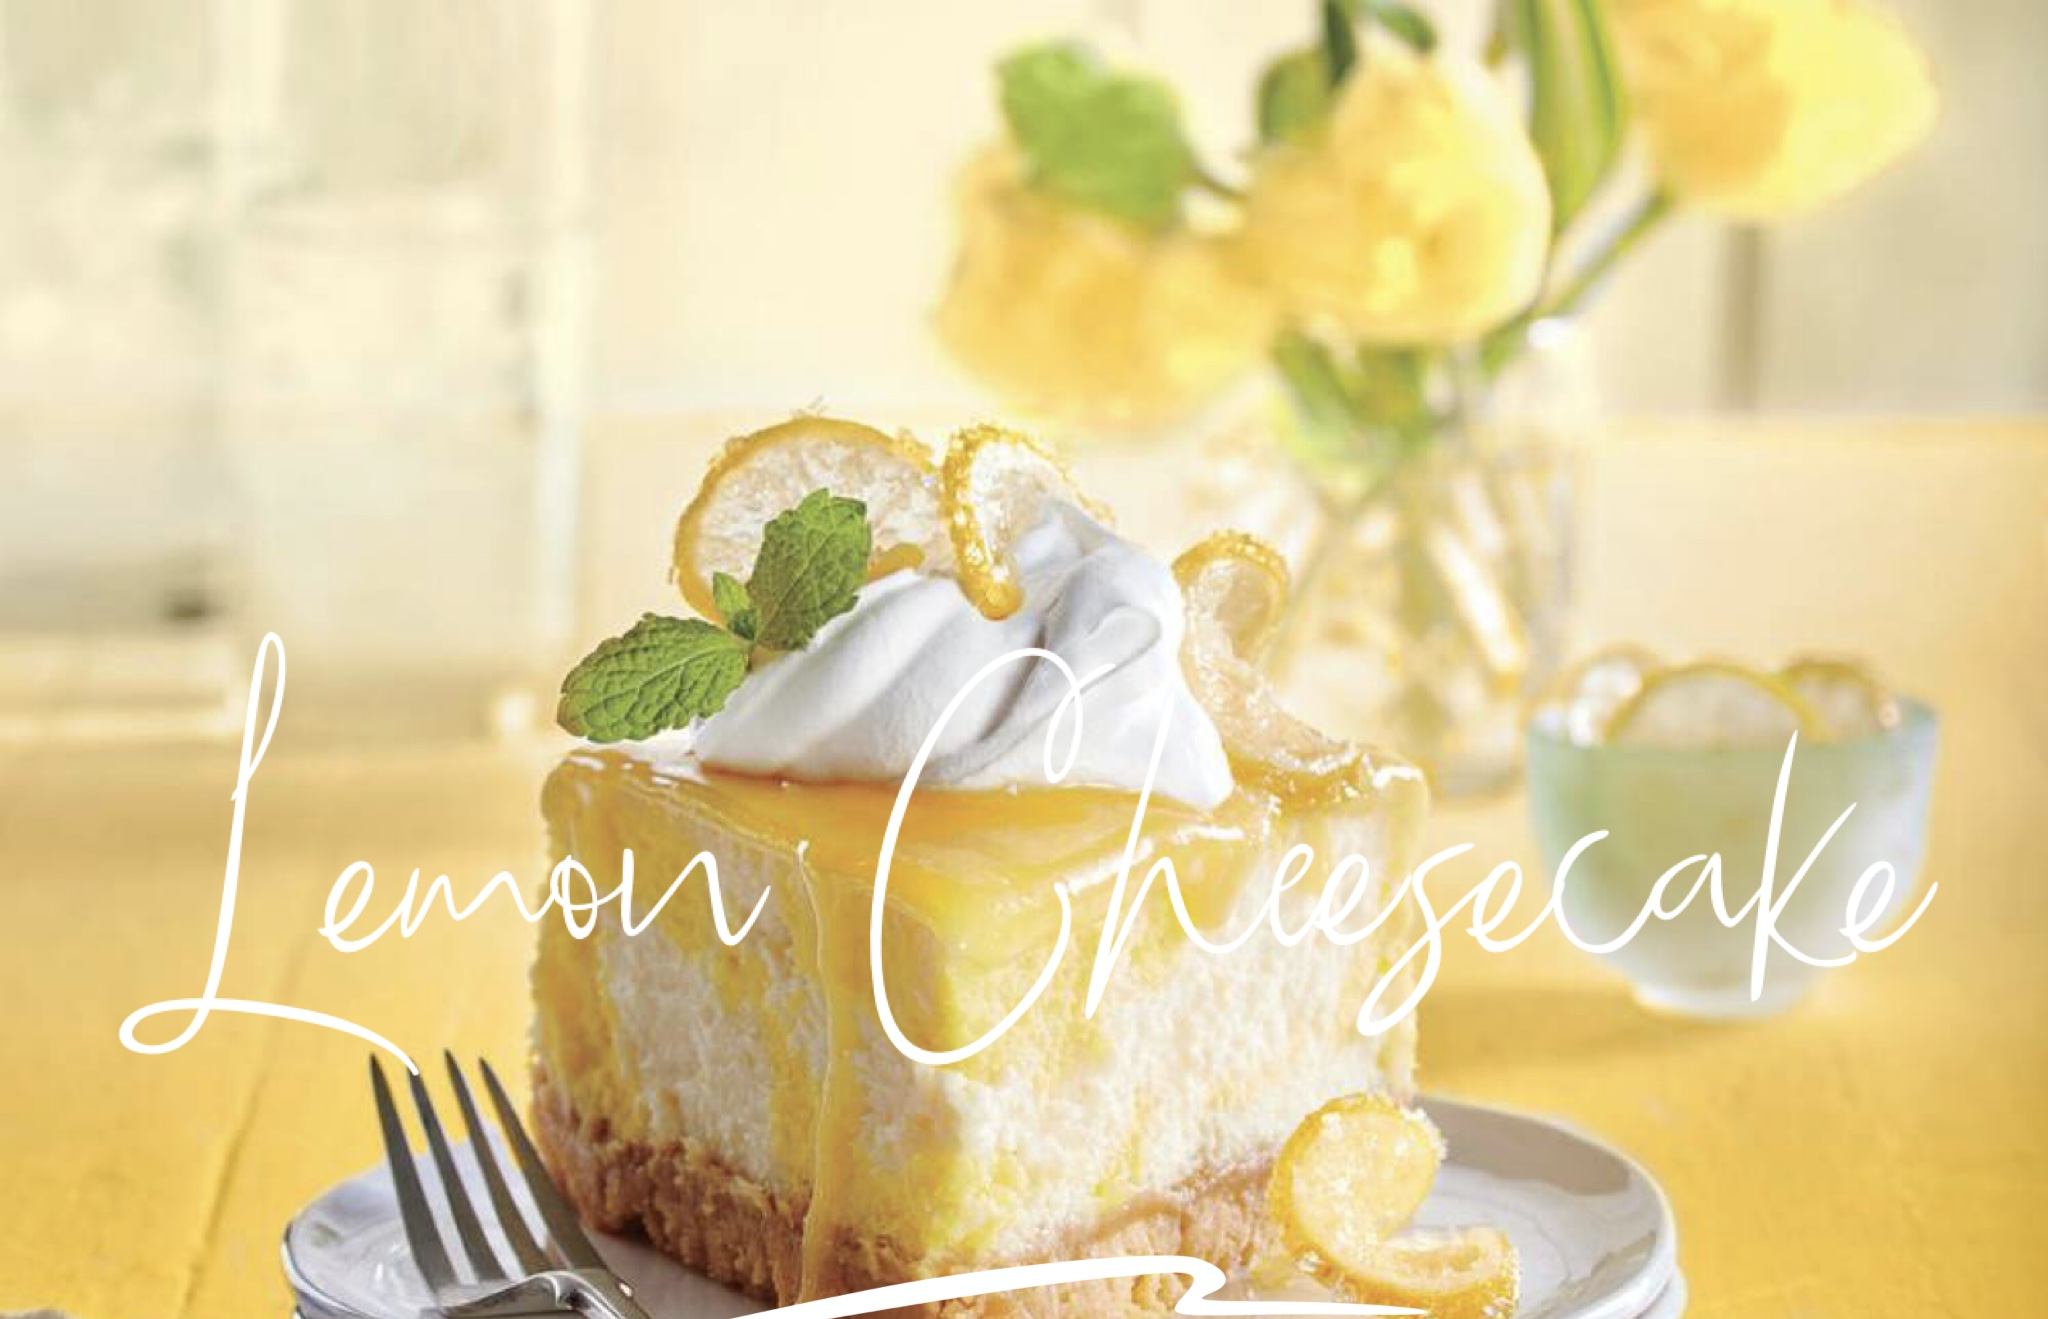 This decadent lemon dessert will surely make your mouth water!